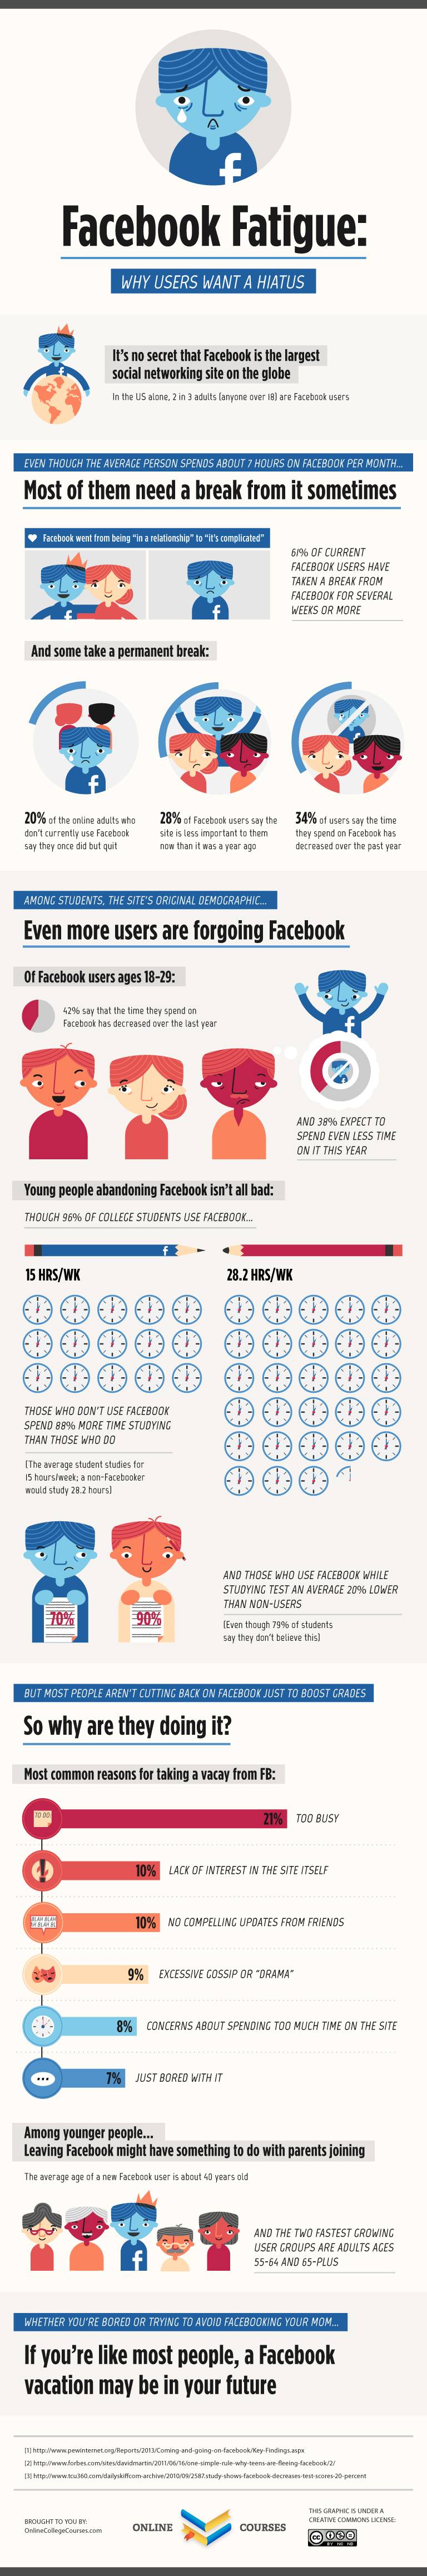 Facebook Fatigue - how users are using Facebook